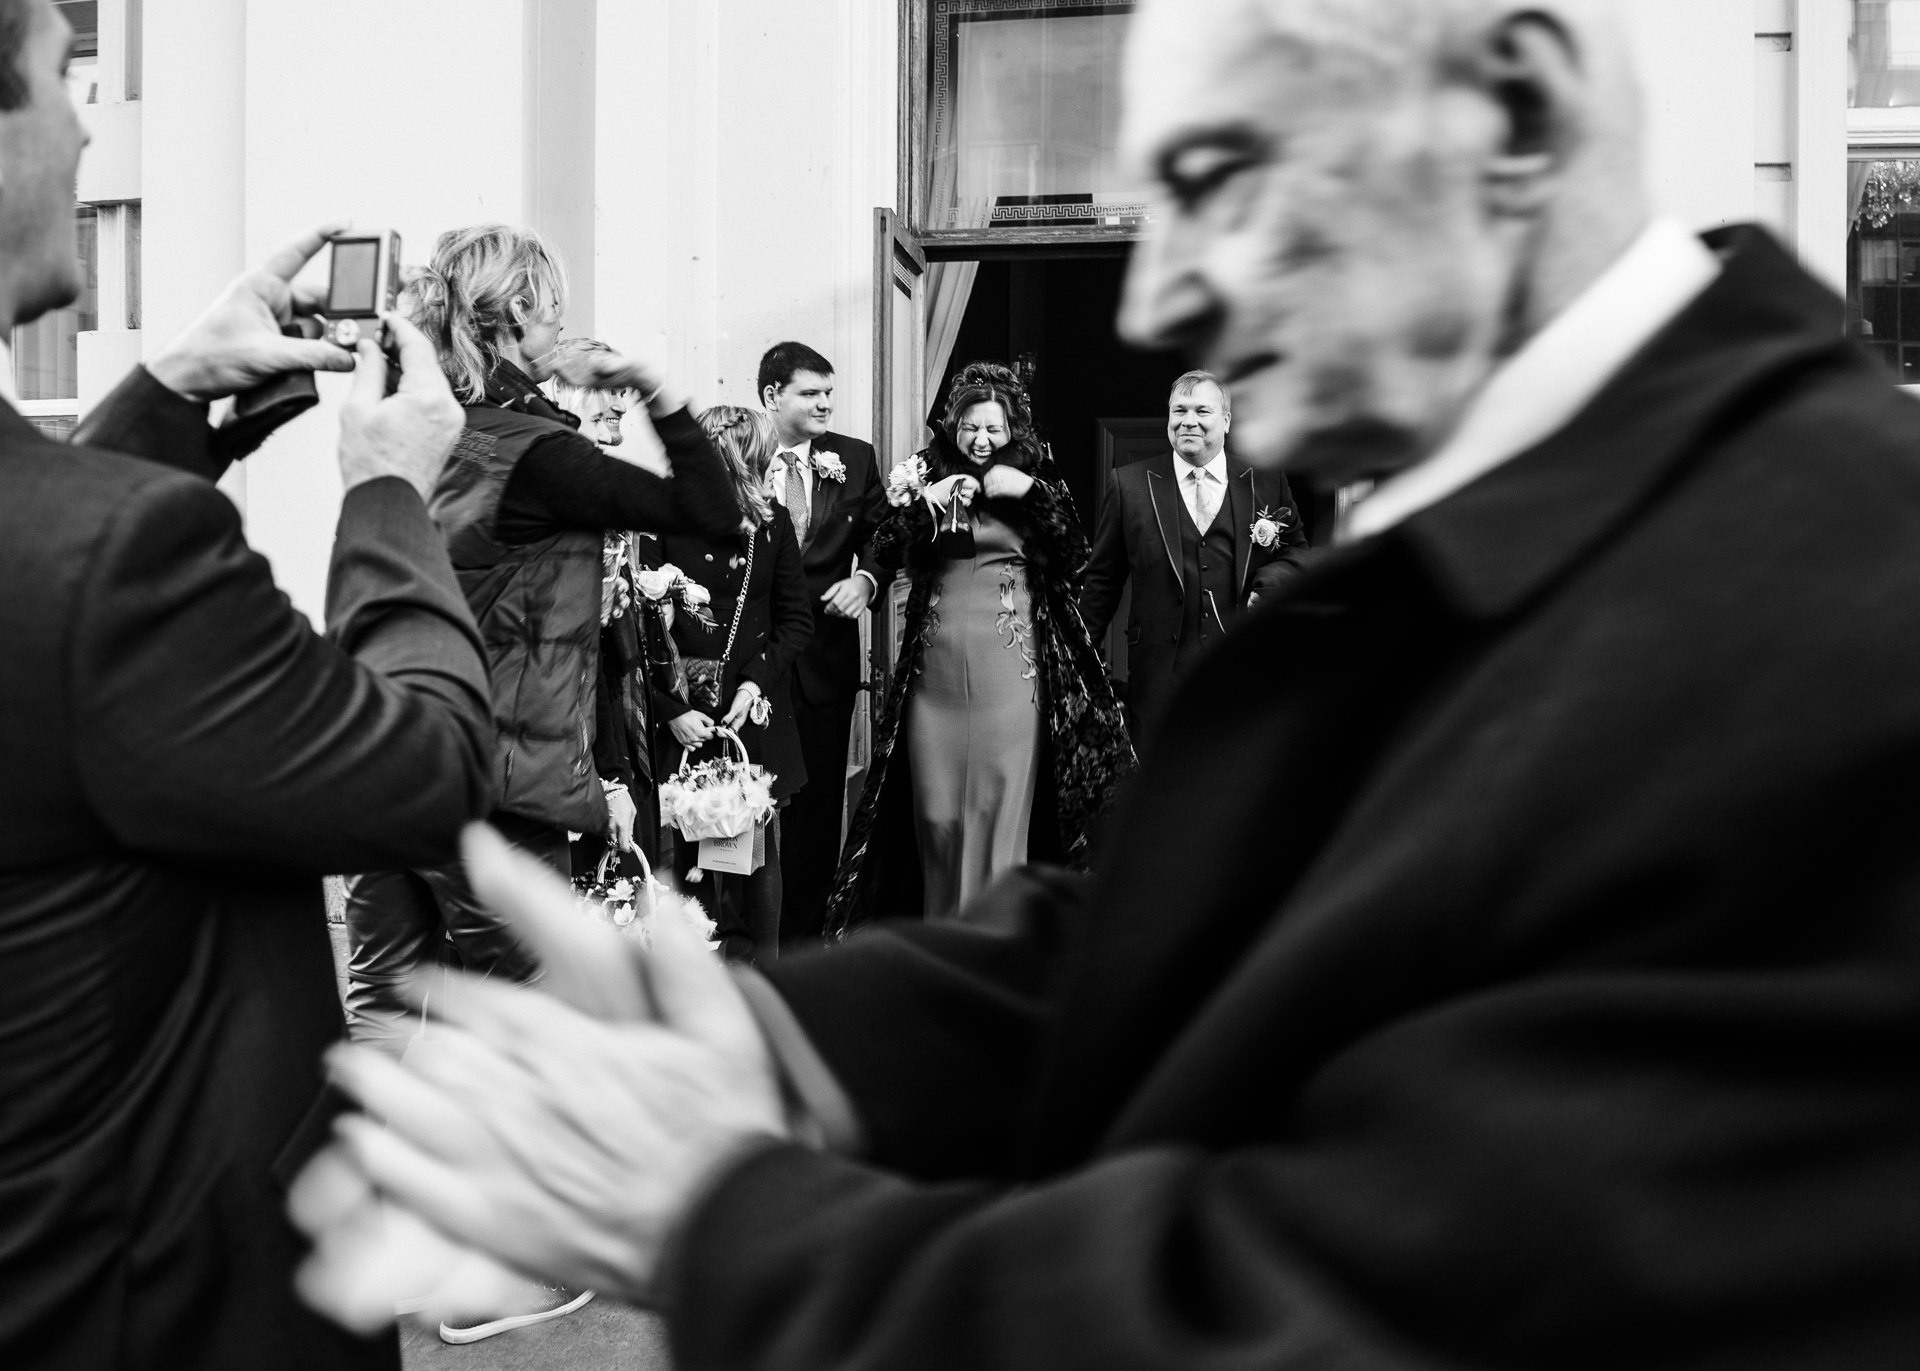 UK Town Hall Elopement Celebration Image | as the newly married couple exited Brighton Town Hall